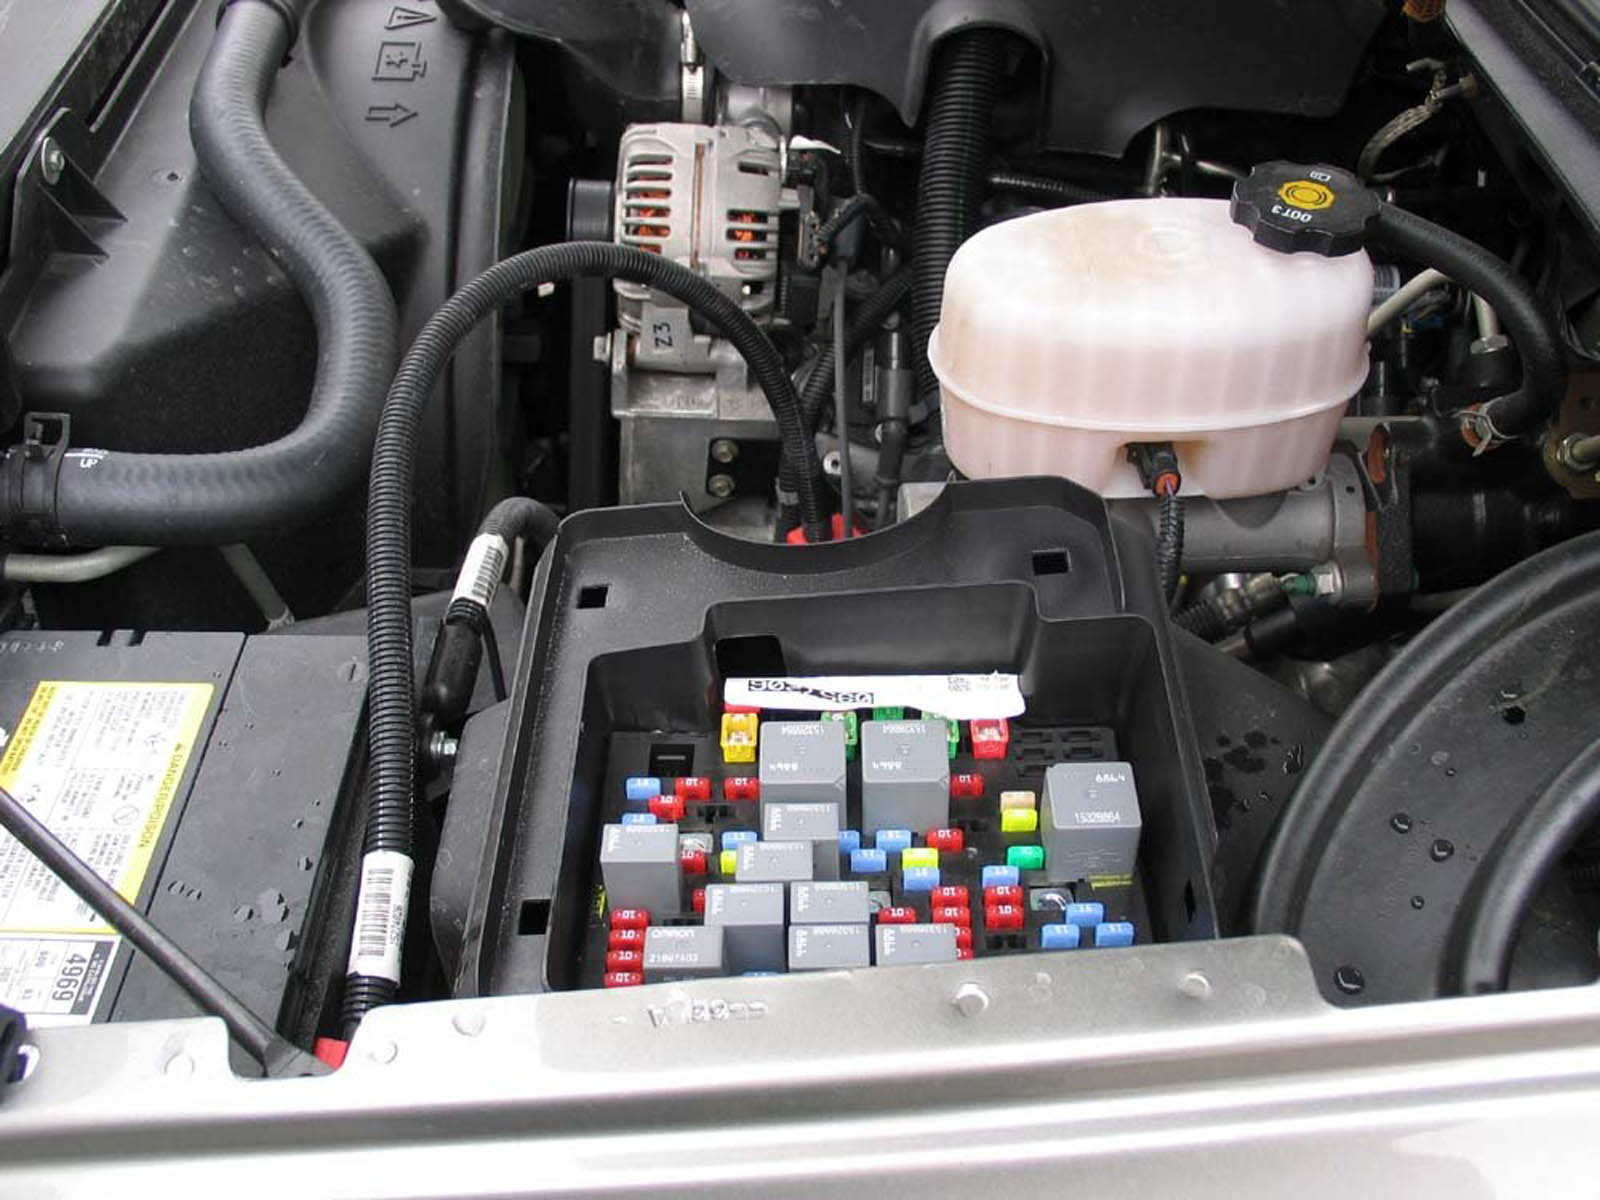 MMMay 27 Fuse Box 04 69845 chevrolet silverado gmt800 1999 2006 fuse box diagram chevroletforum 2007 suburban fuse box removal at gsmx.co